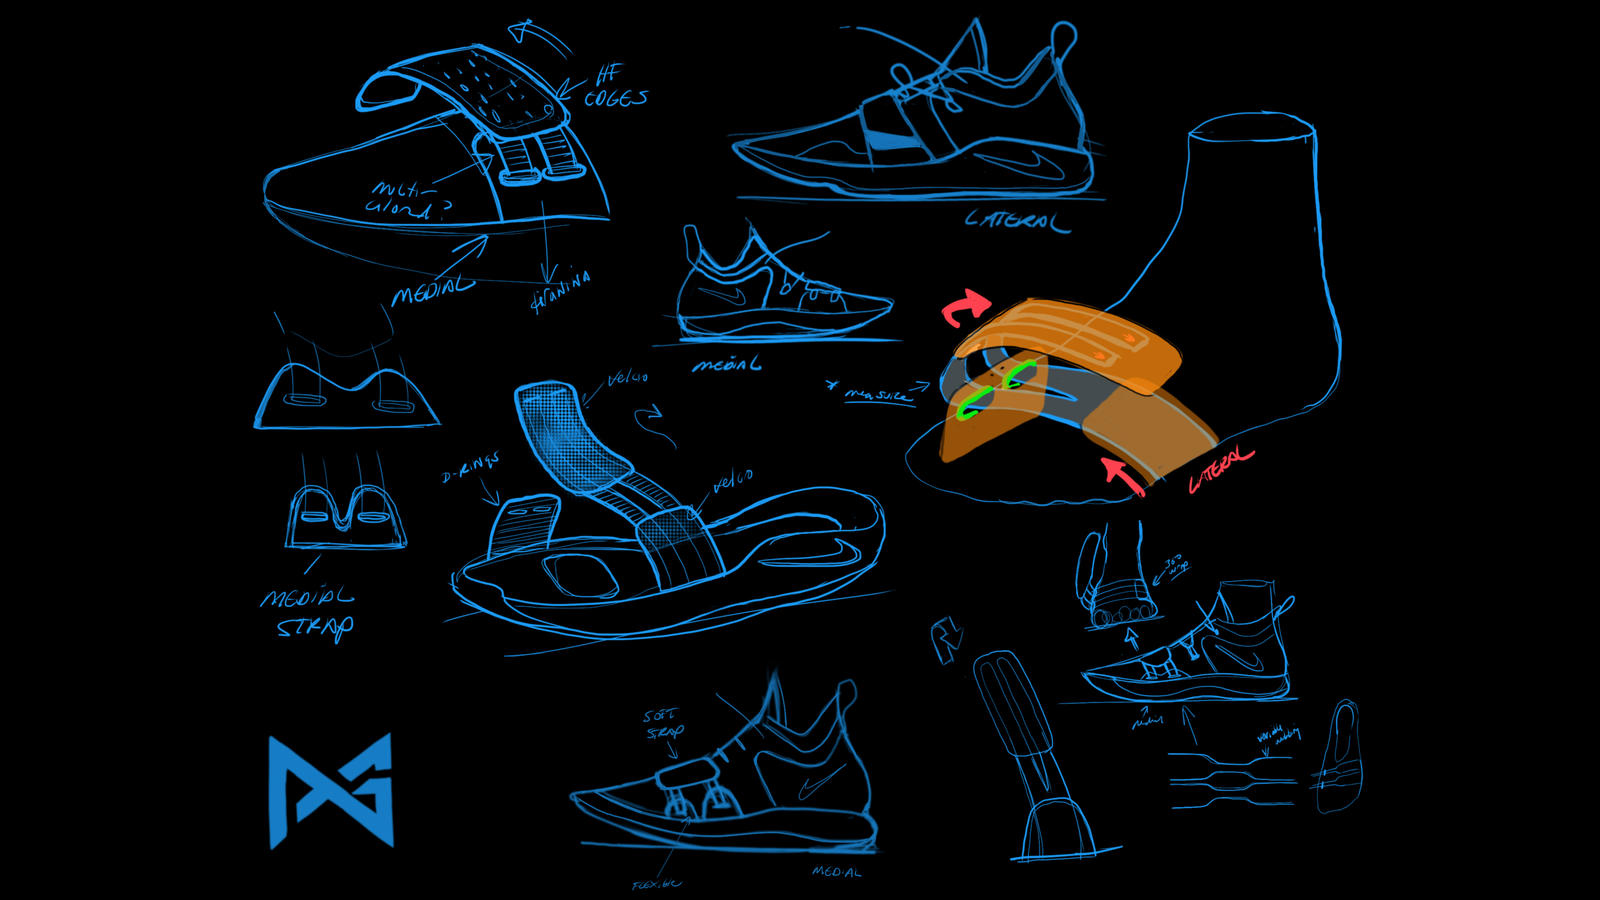 Paul george pg 2 5 sketch page nike news native 1600